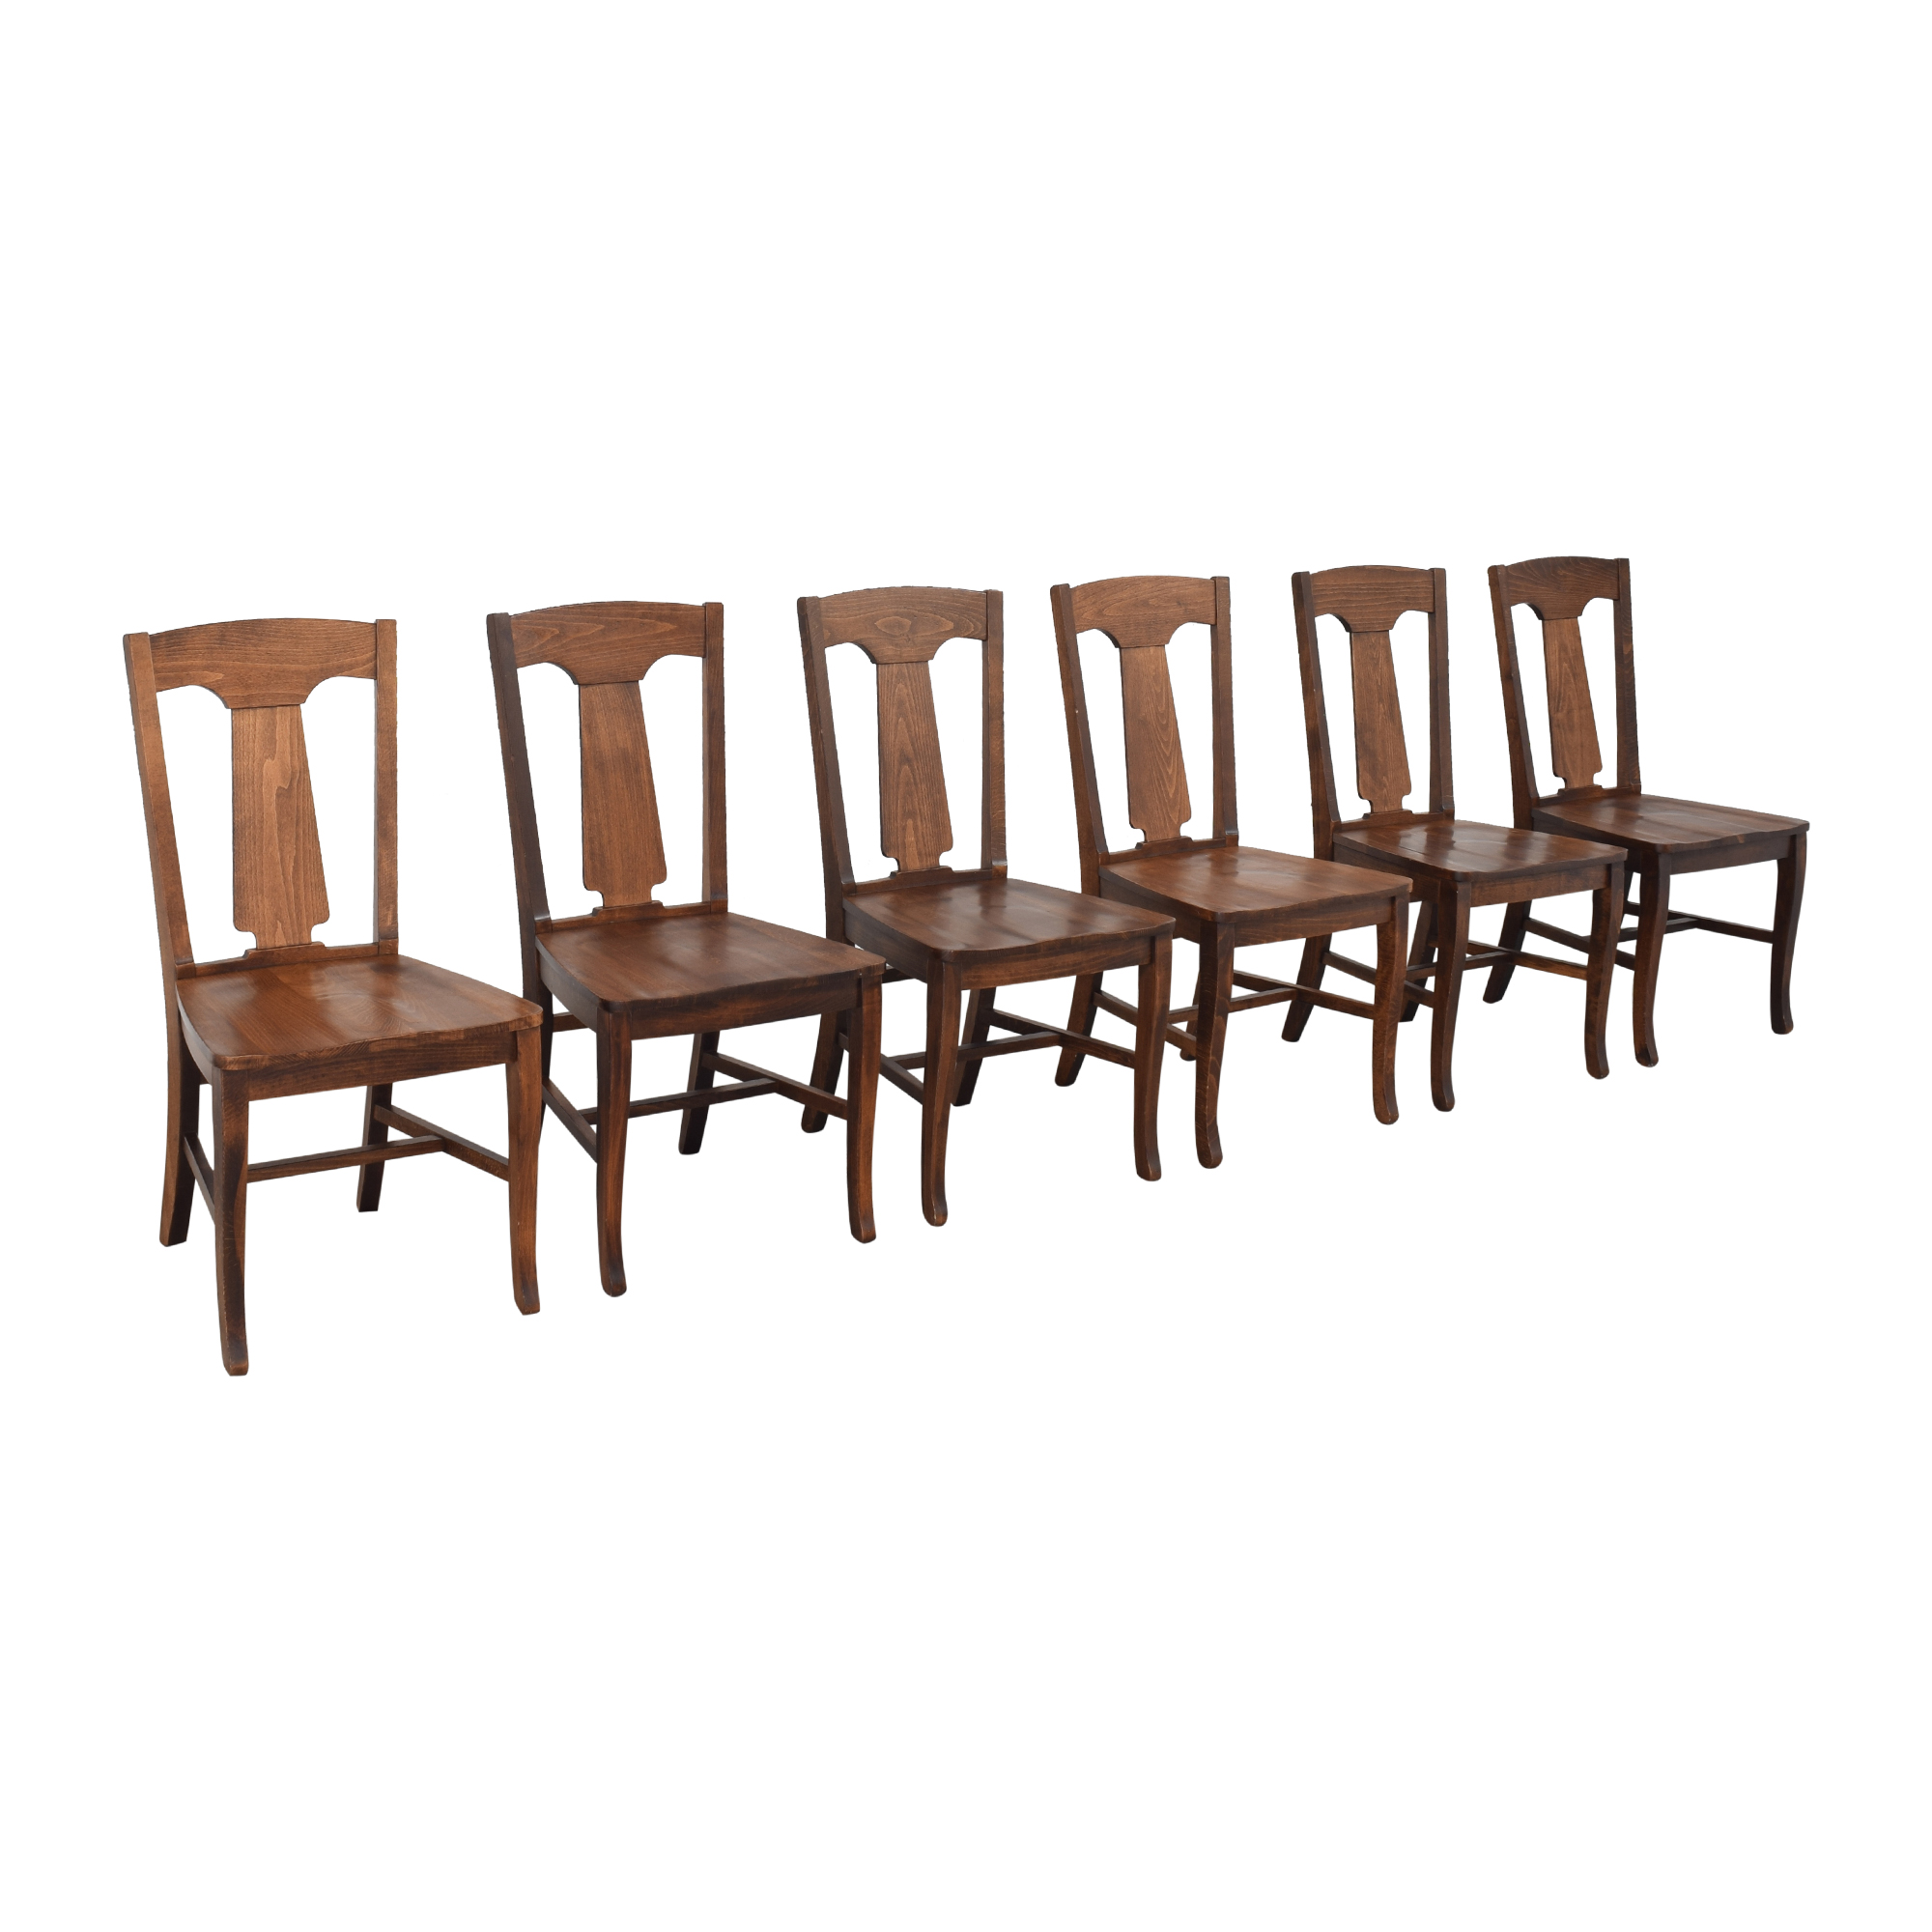 Pottery Barn Pottery Barn Loren Dining Side Chairs for sale